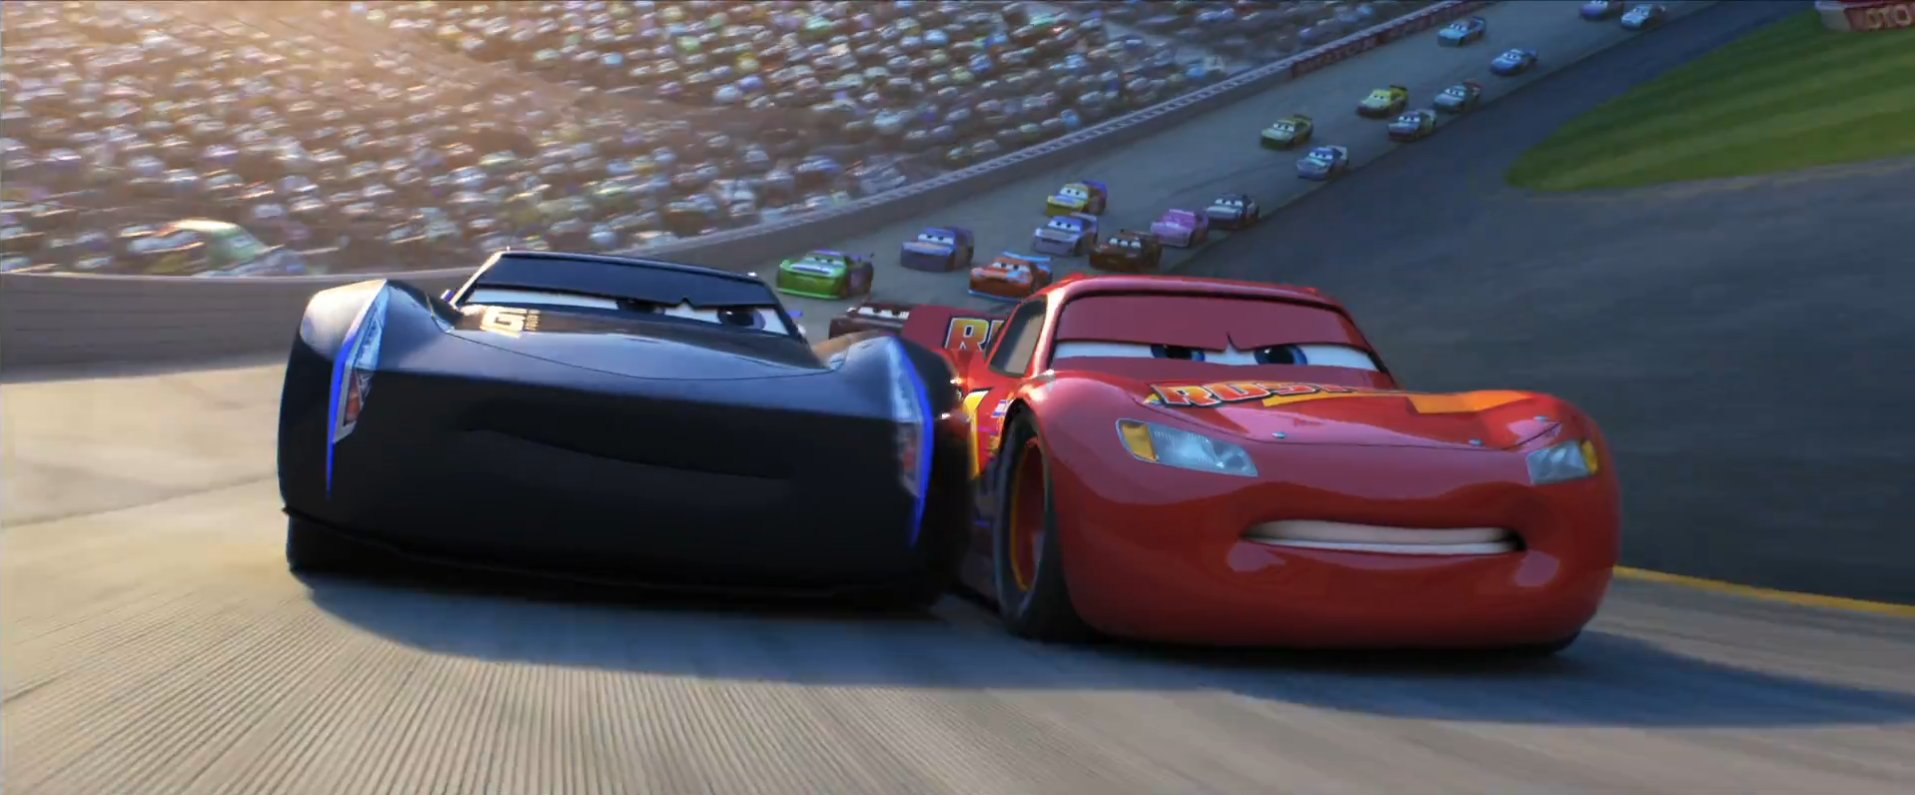 Cars 3 Rivalry Trailer Featuring Lightning McQueen